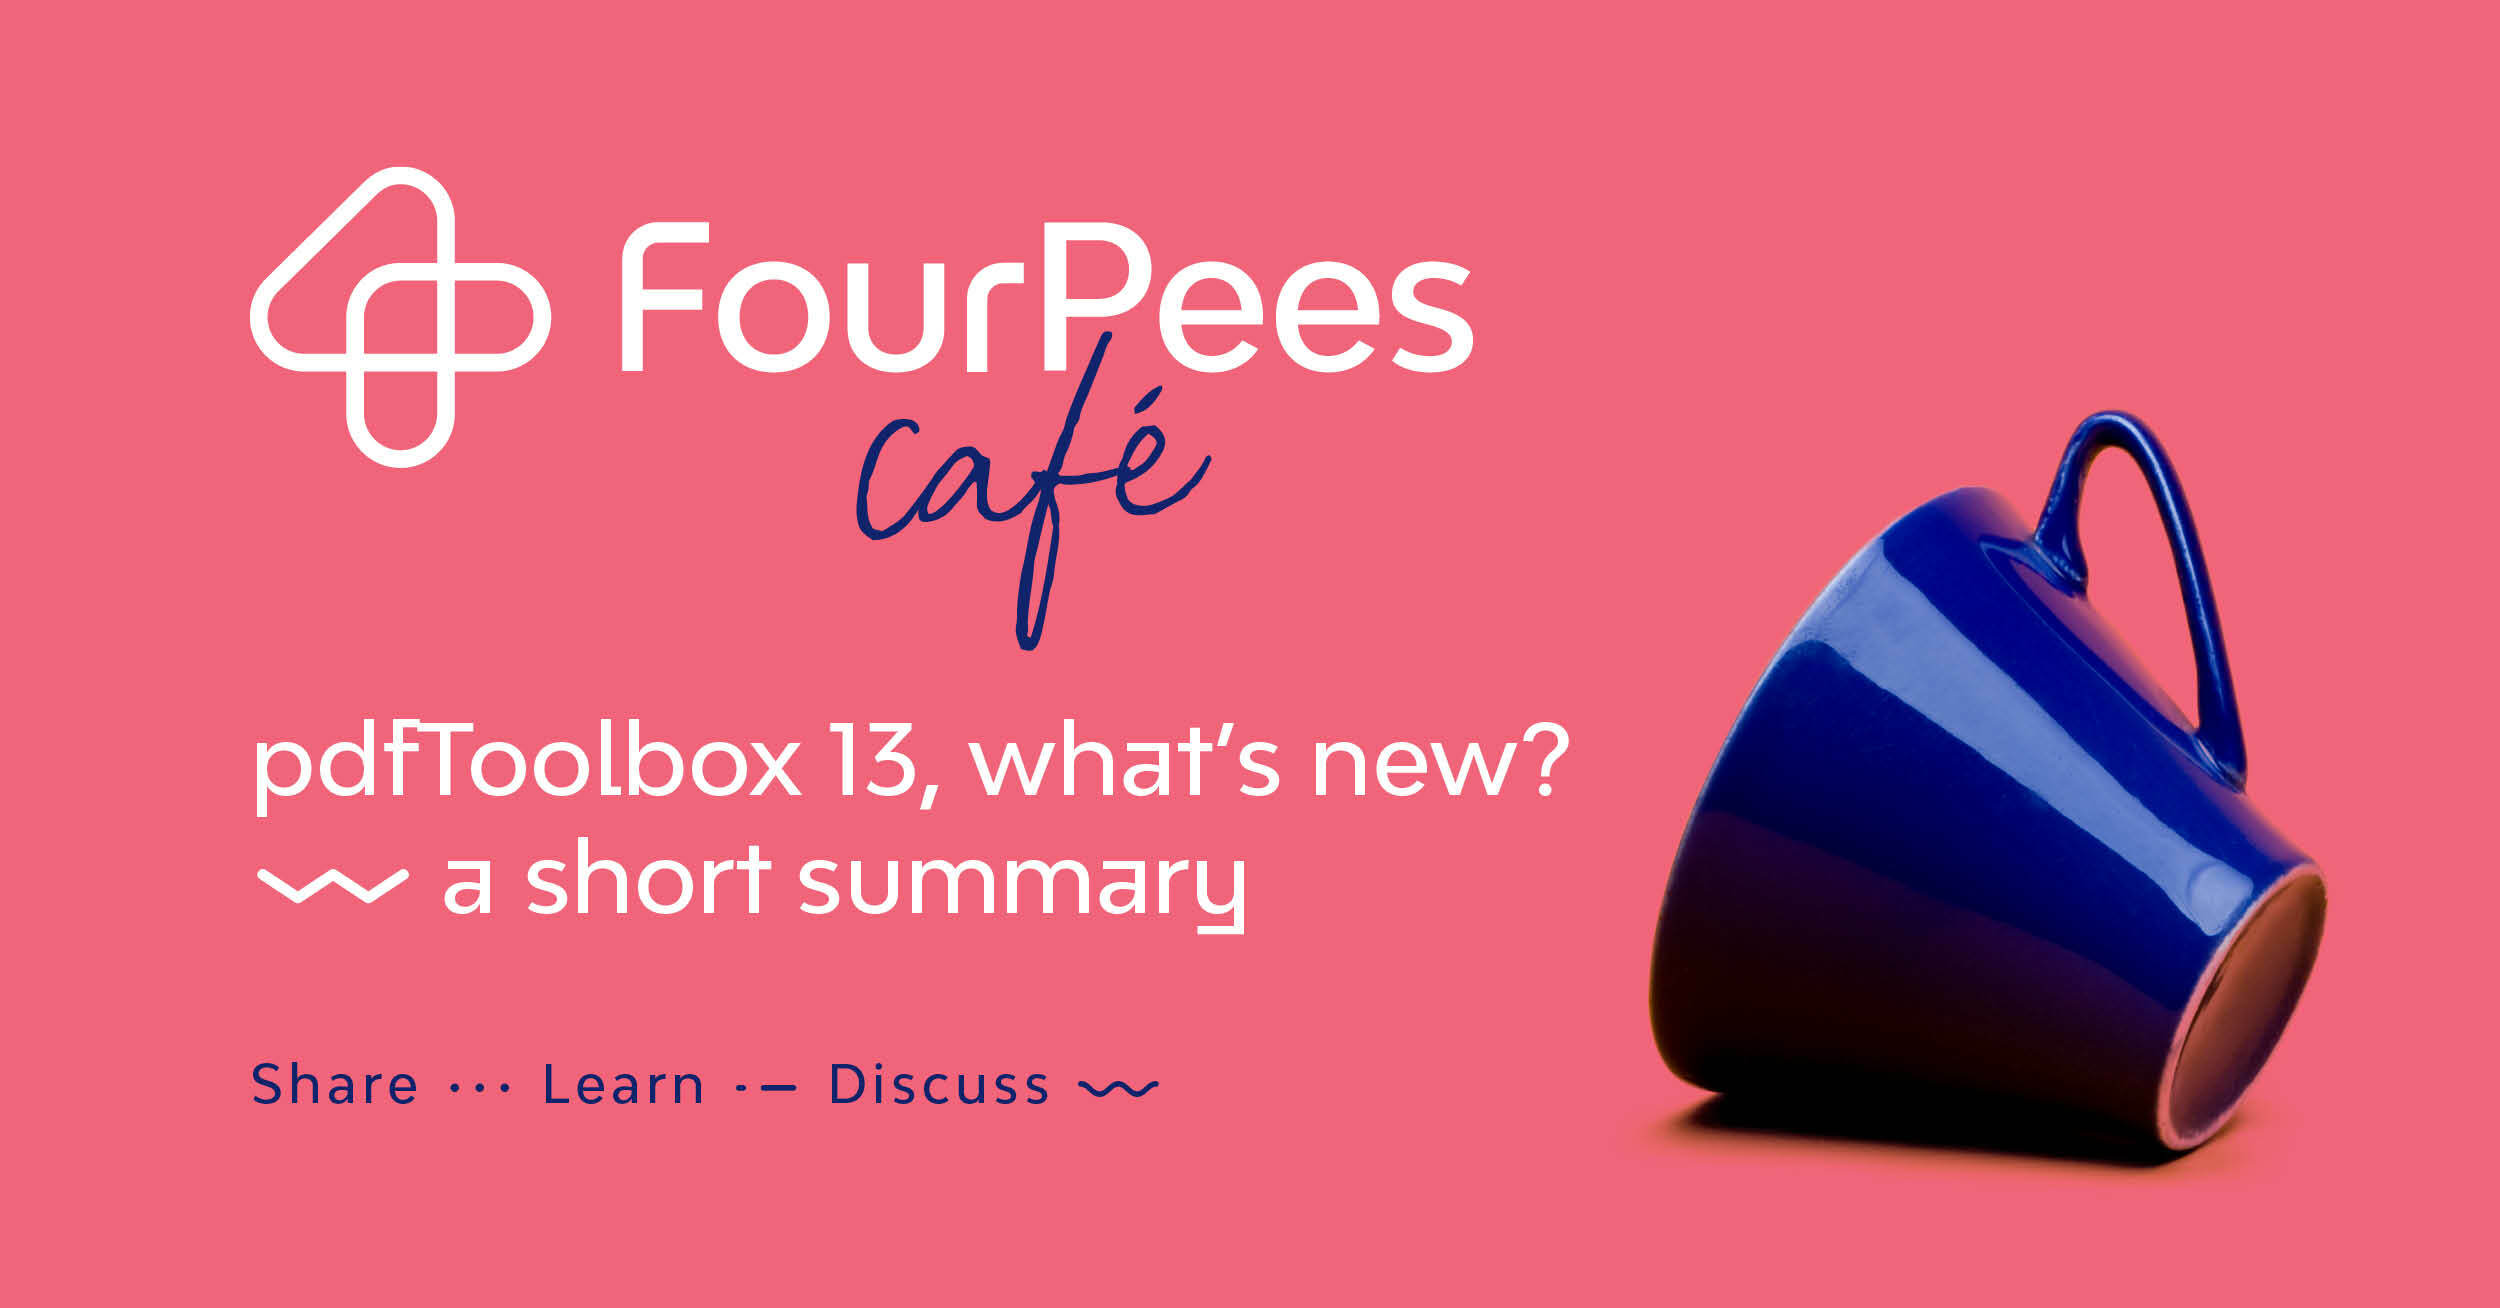 Four Pees Café - pdfToolbox 13, what's new? A short summary